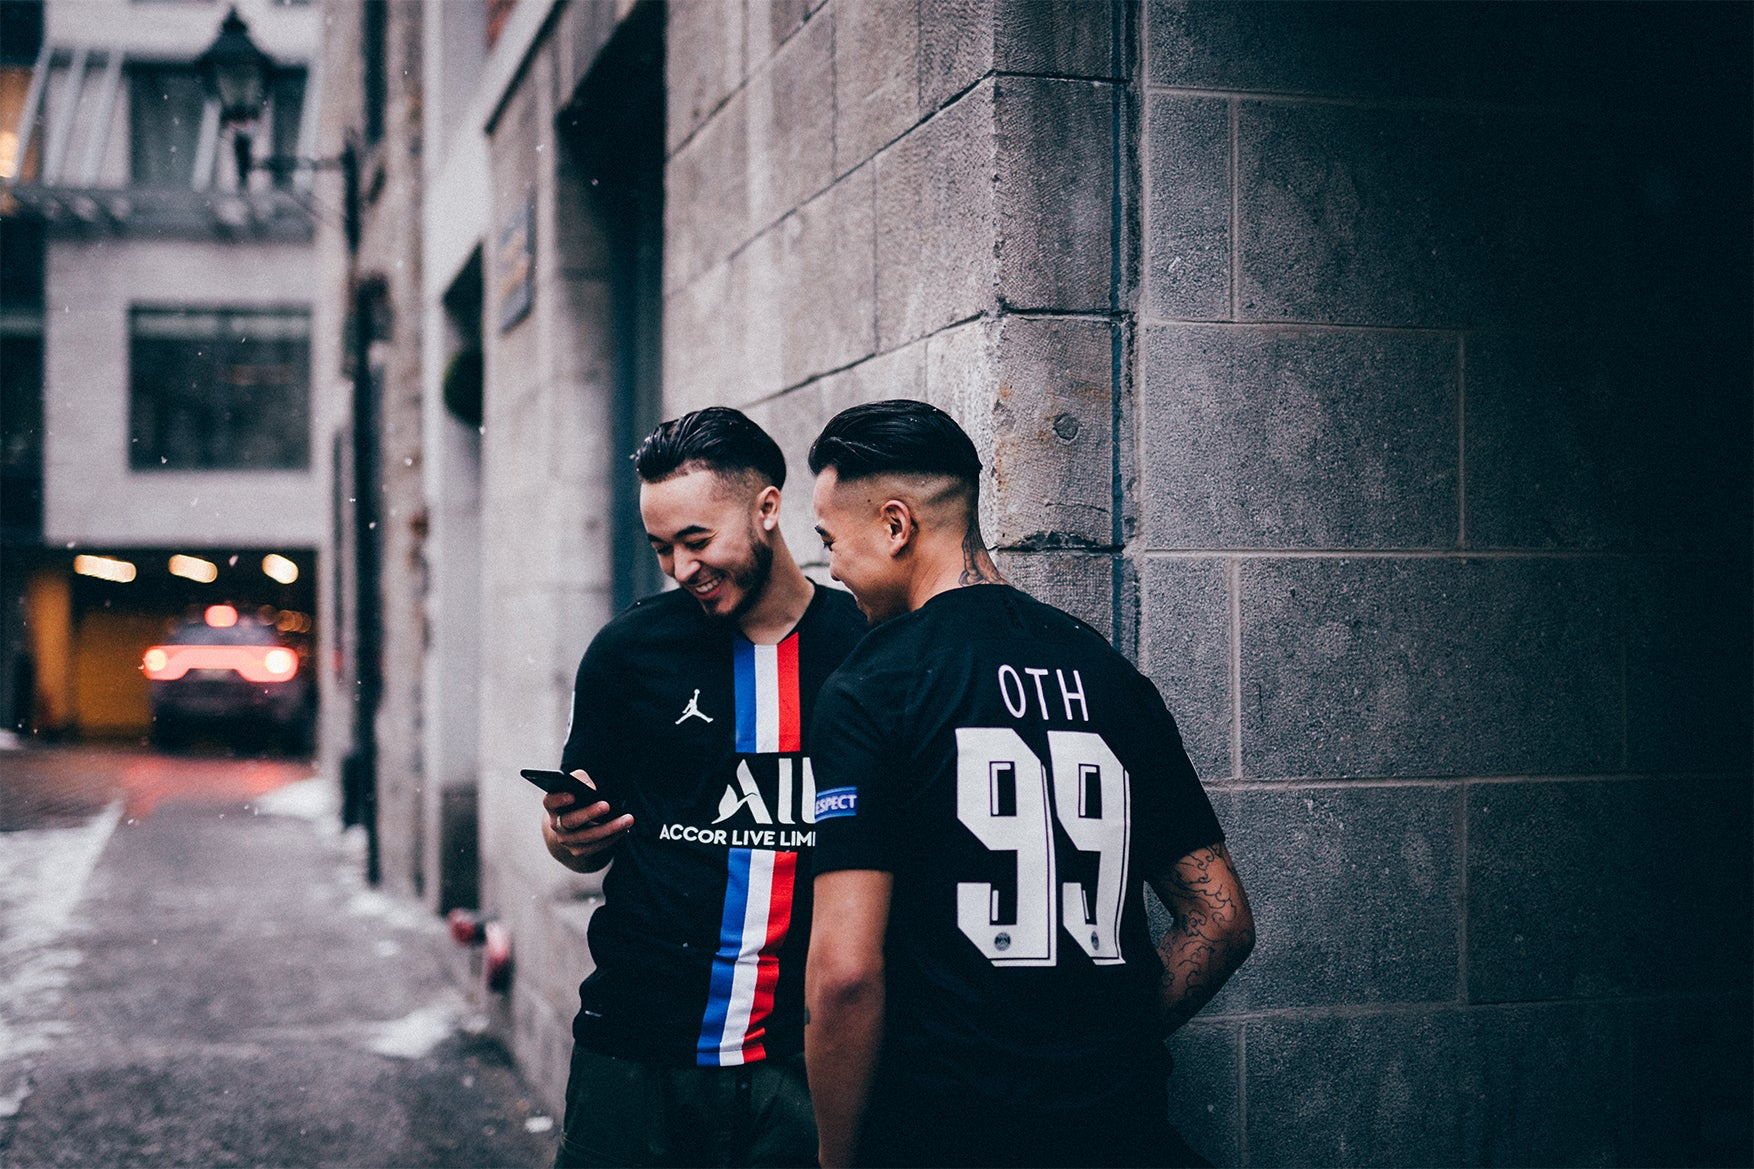 Collaboration Psg X Oth 4e Jersey Psg Fourth Match 19 20 Off The Hook